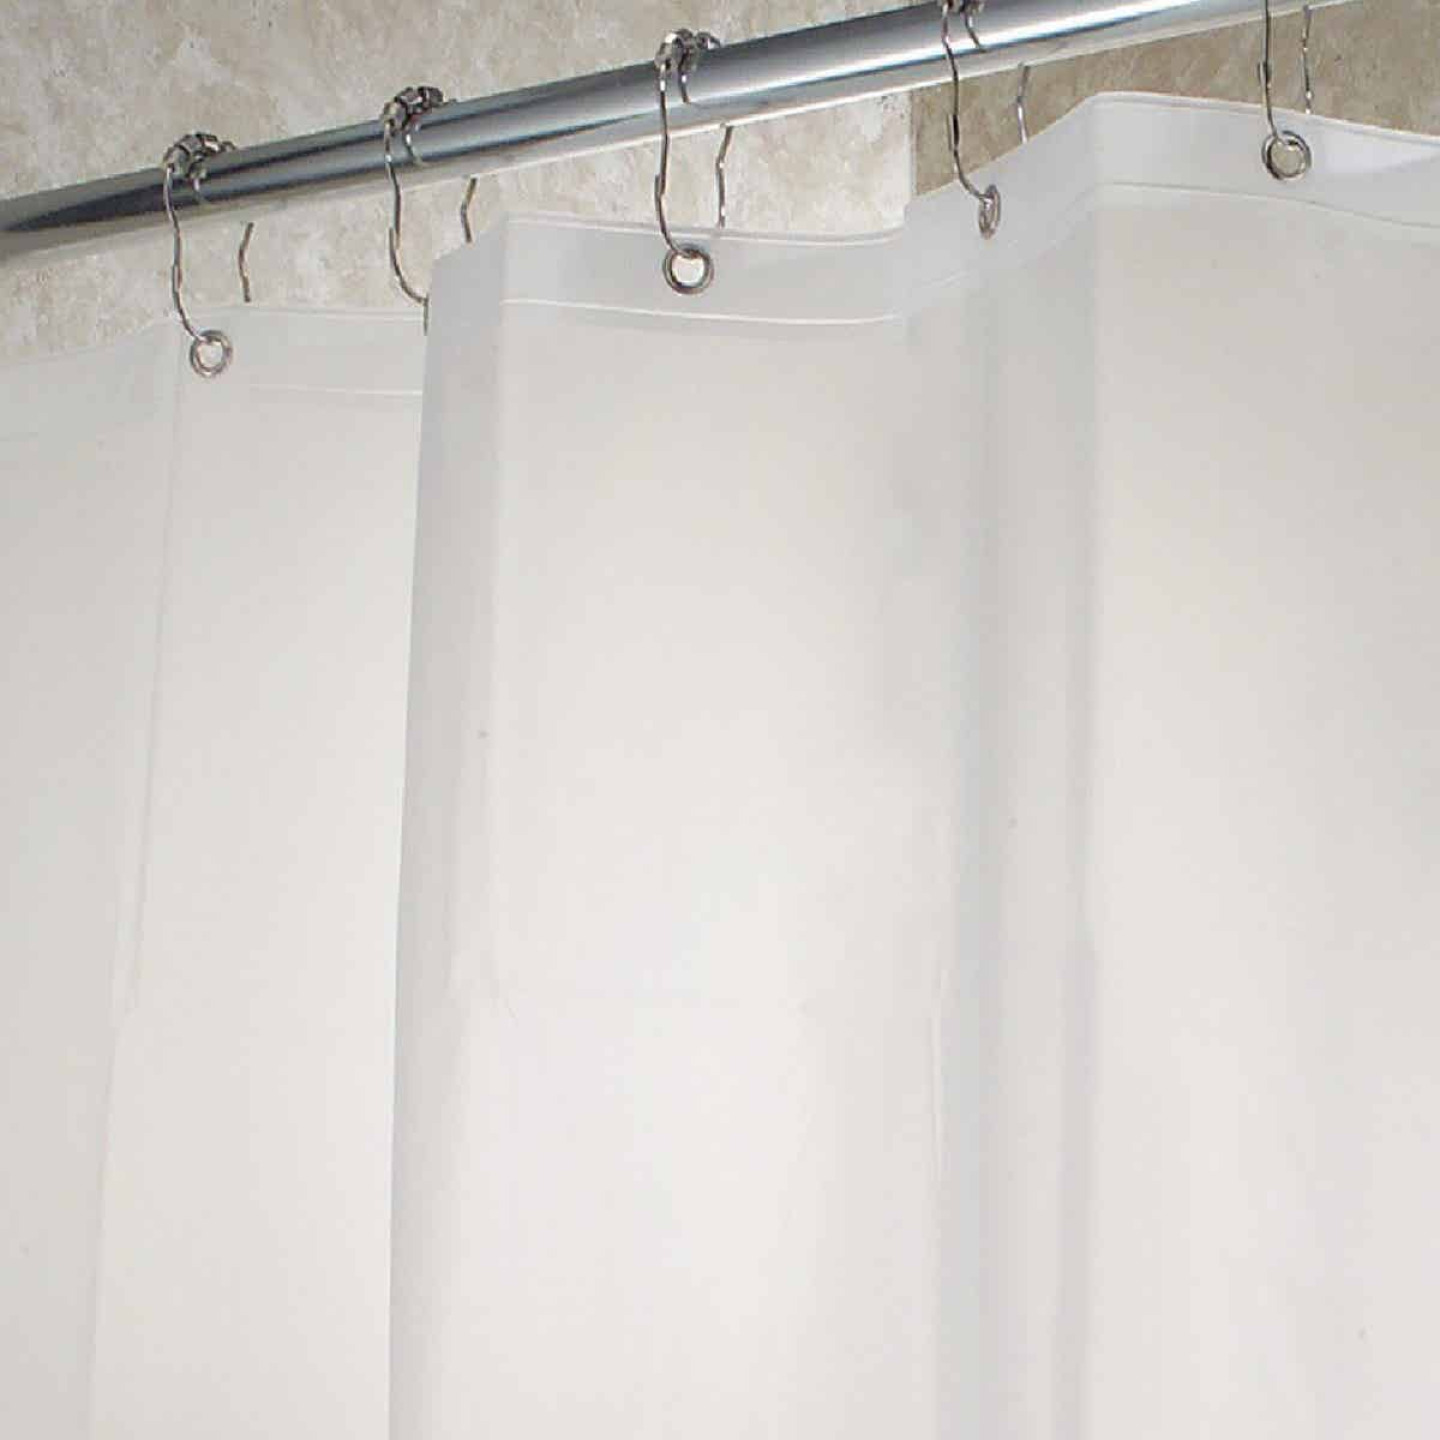 InterDesign Gia 72 In. x 72 In. Clear Vinyl Shower Curtain Liner Image 1